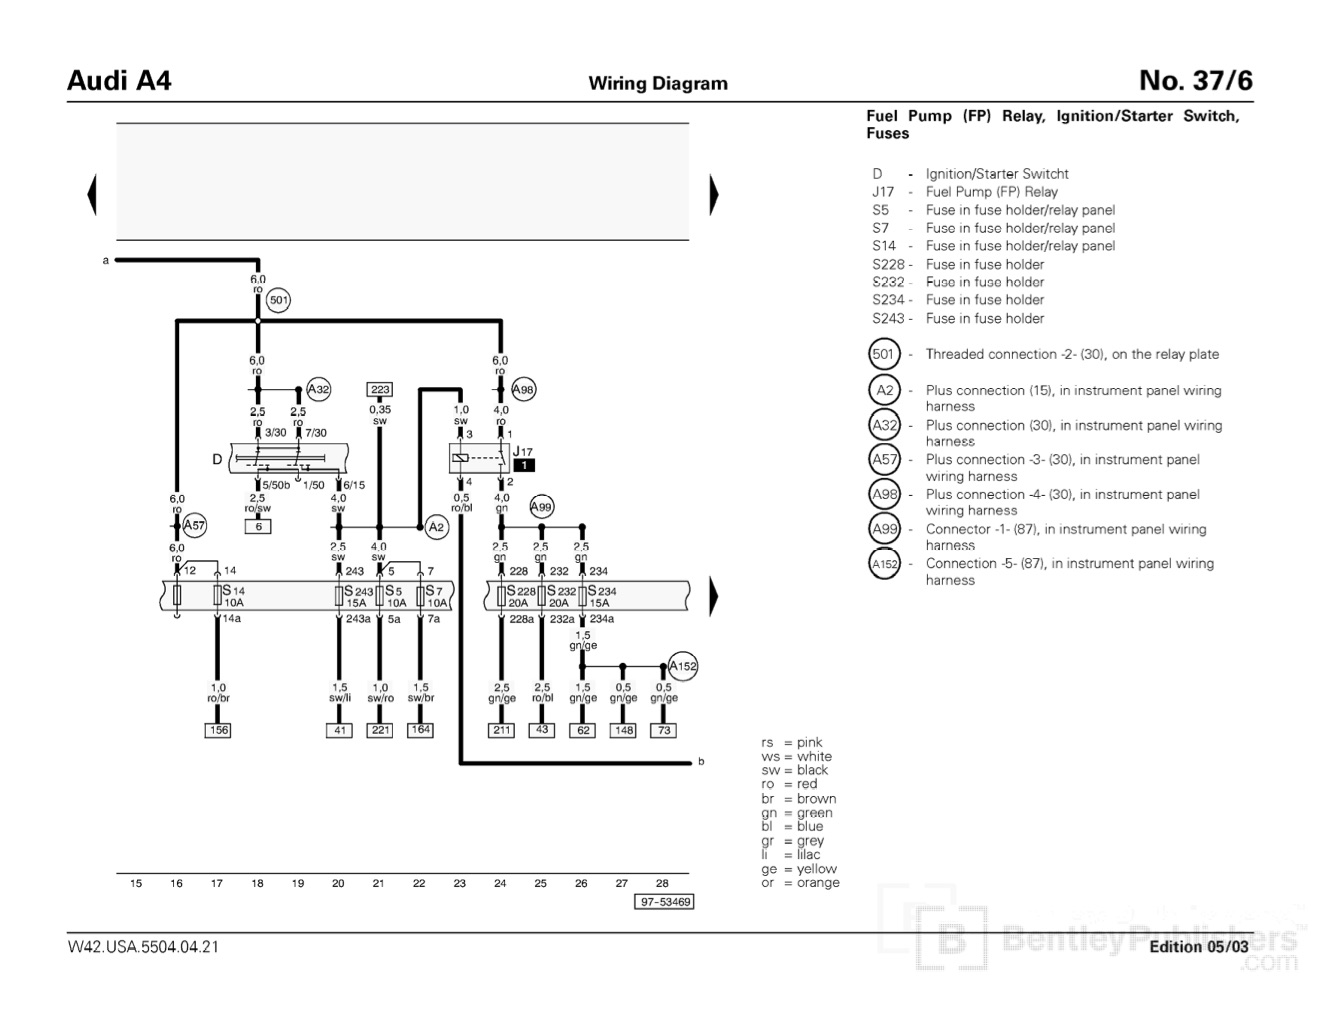 Fuse Box In Audi A4 2000 : B passat fuse panel diagram imageresizertool